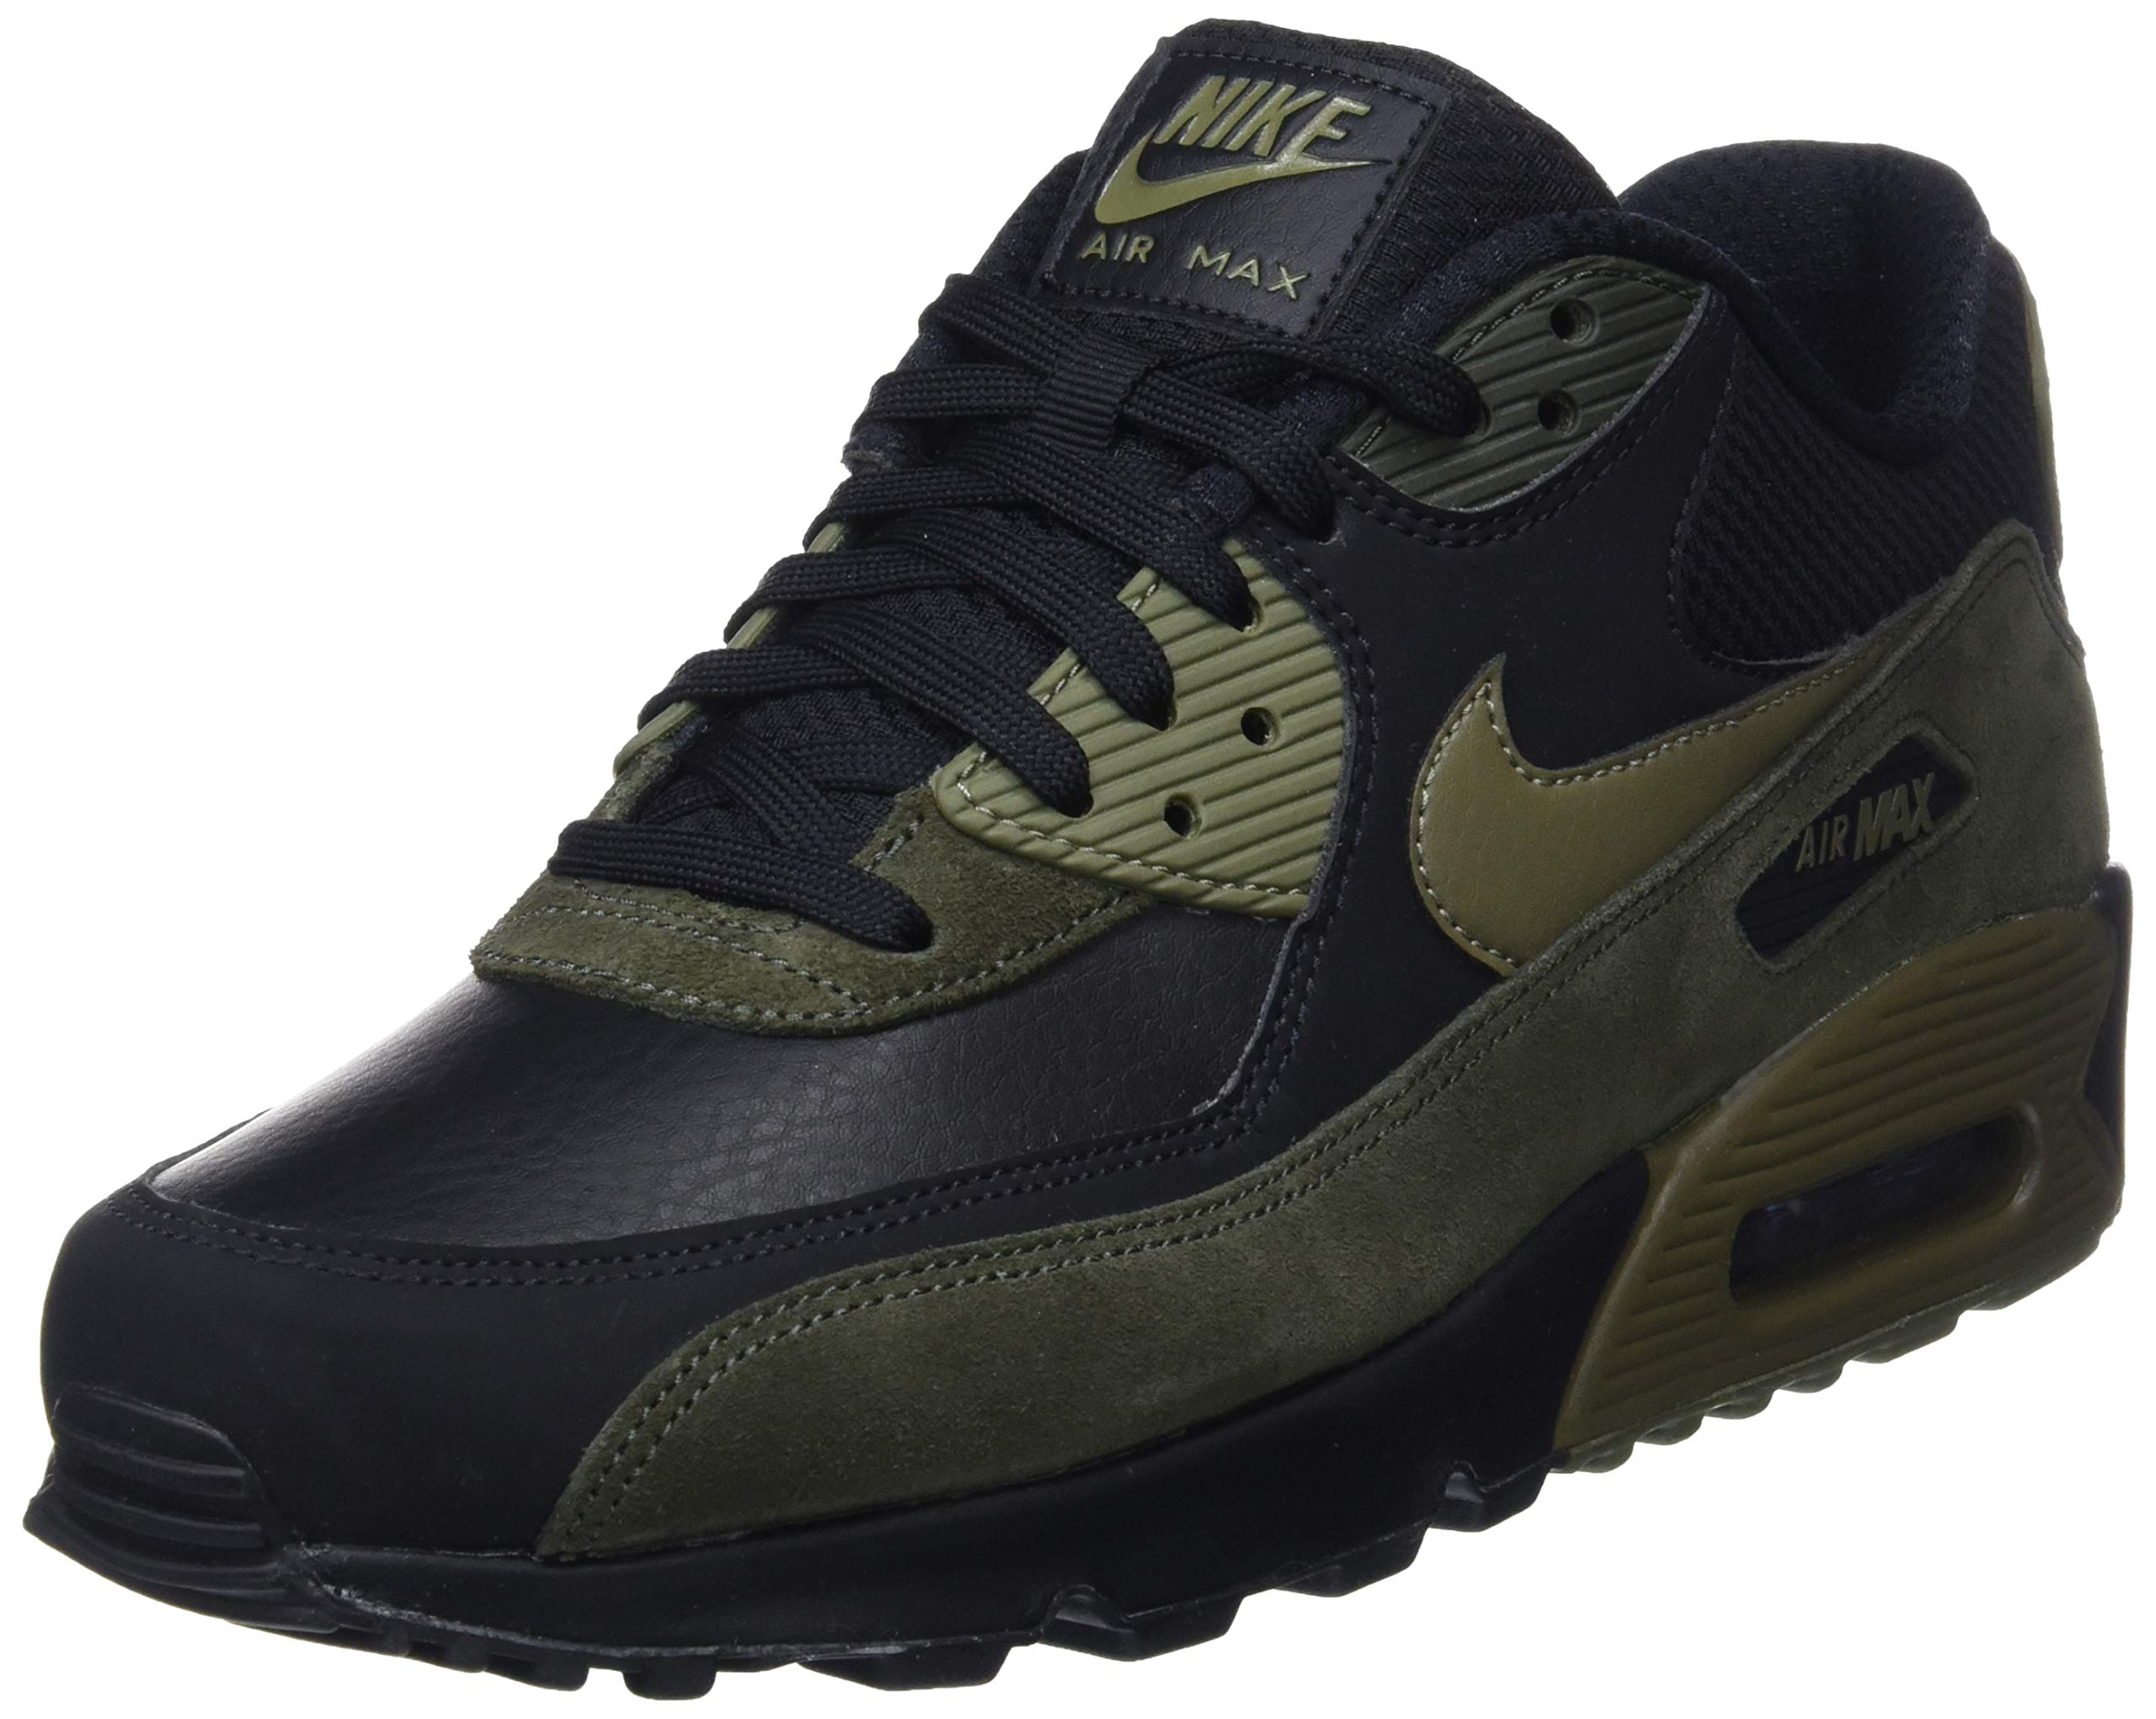 Galleon Nike Mens Air Max 90 Leather Running Shoes Black